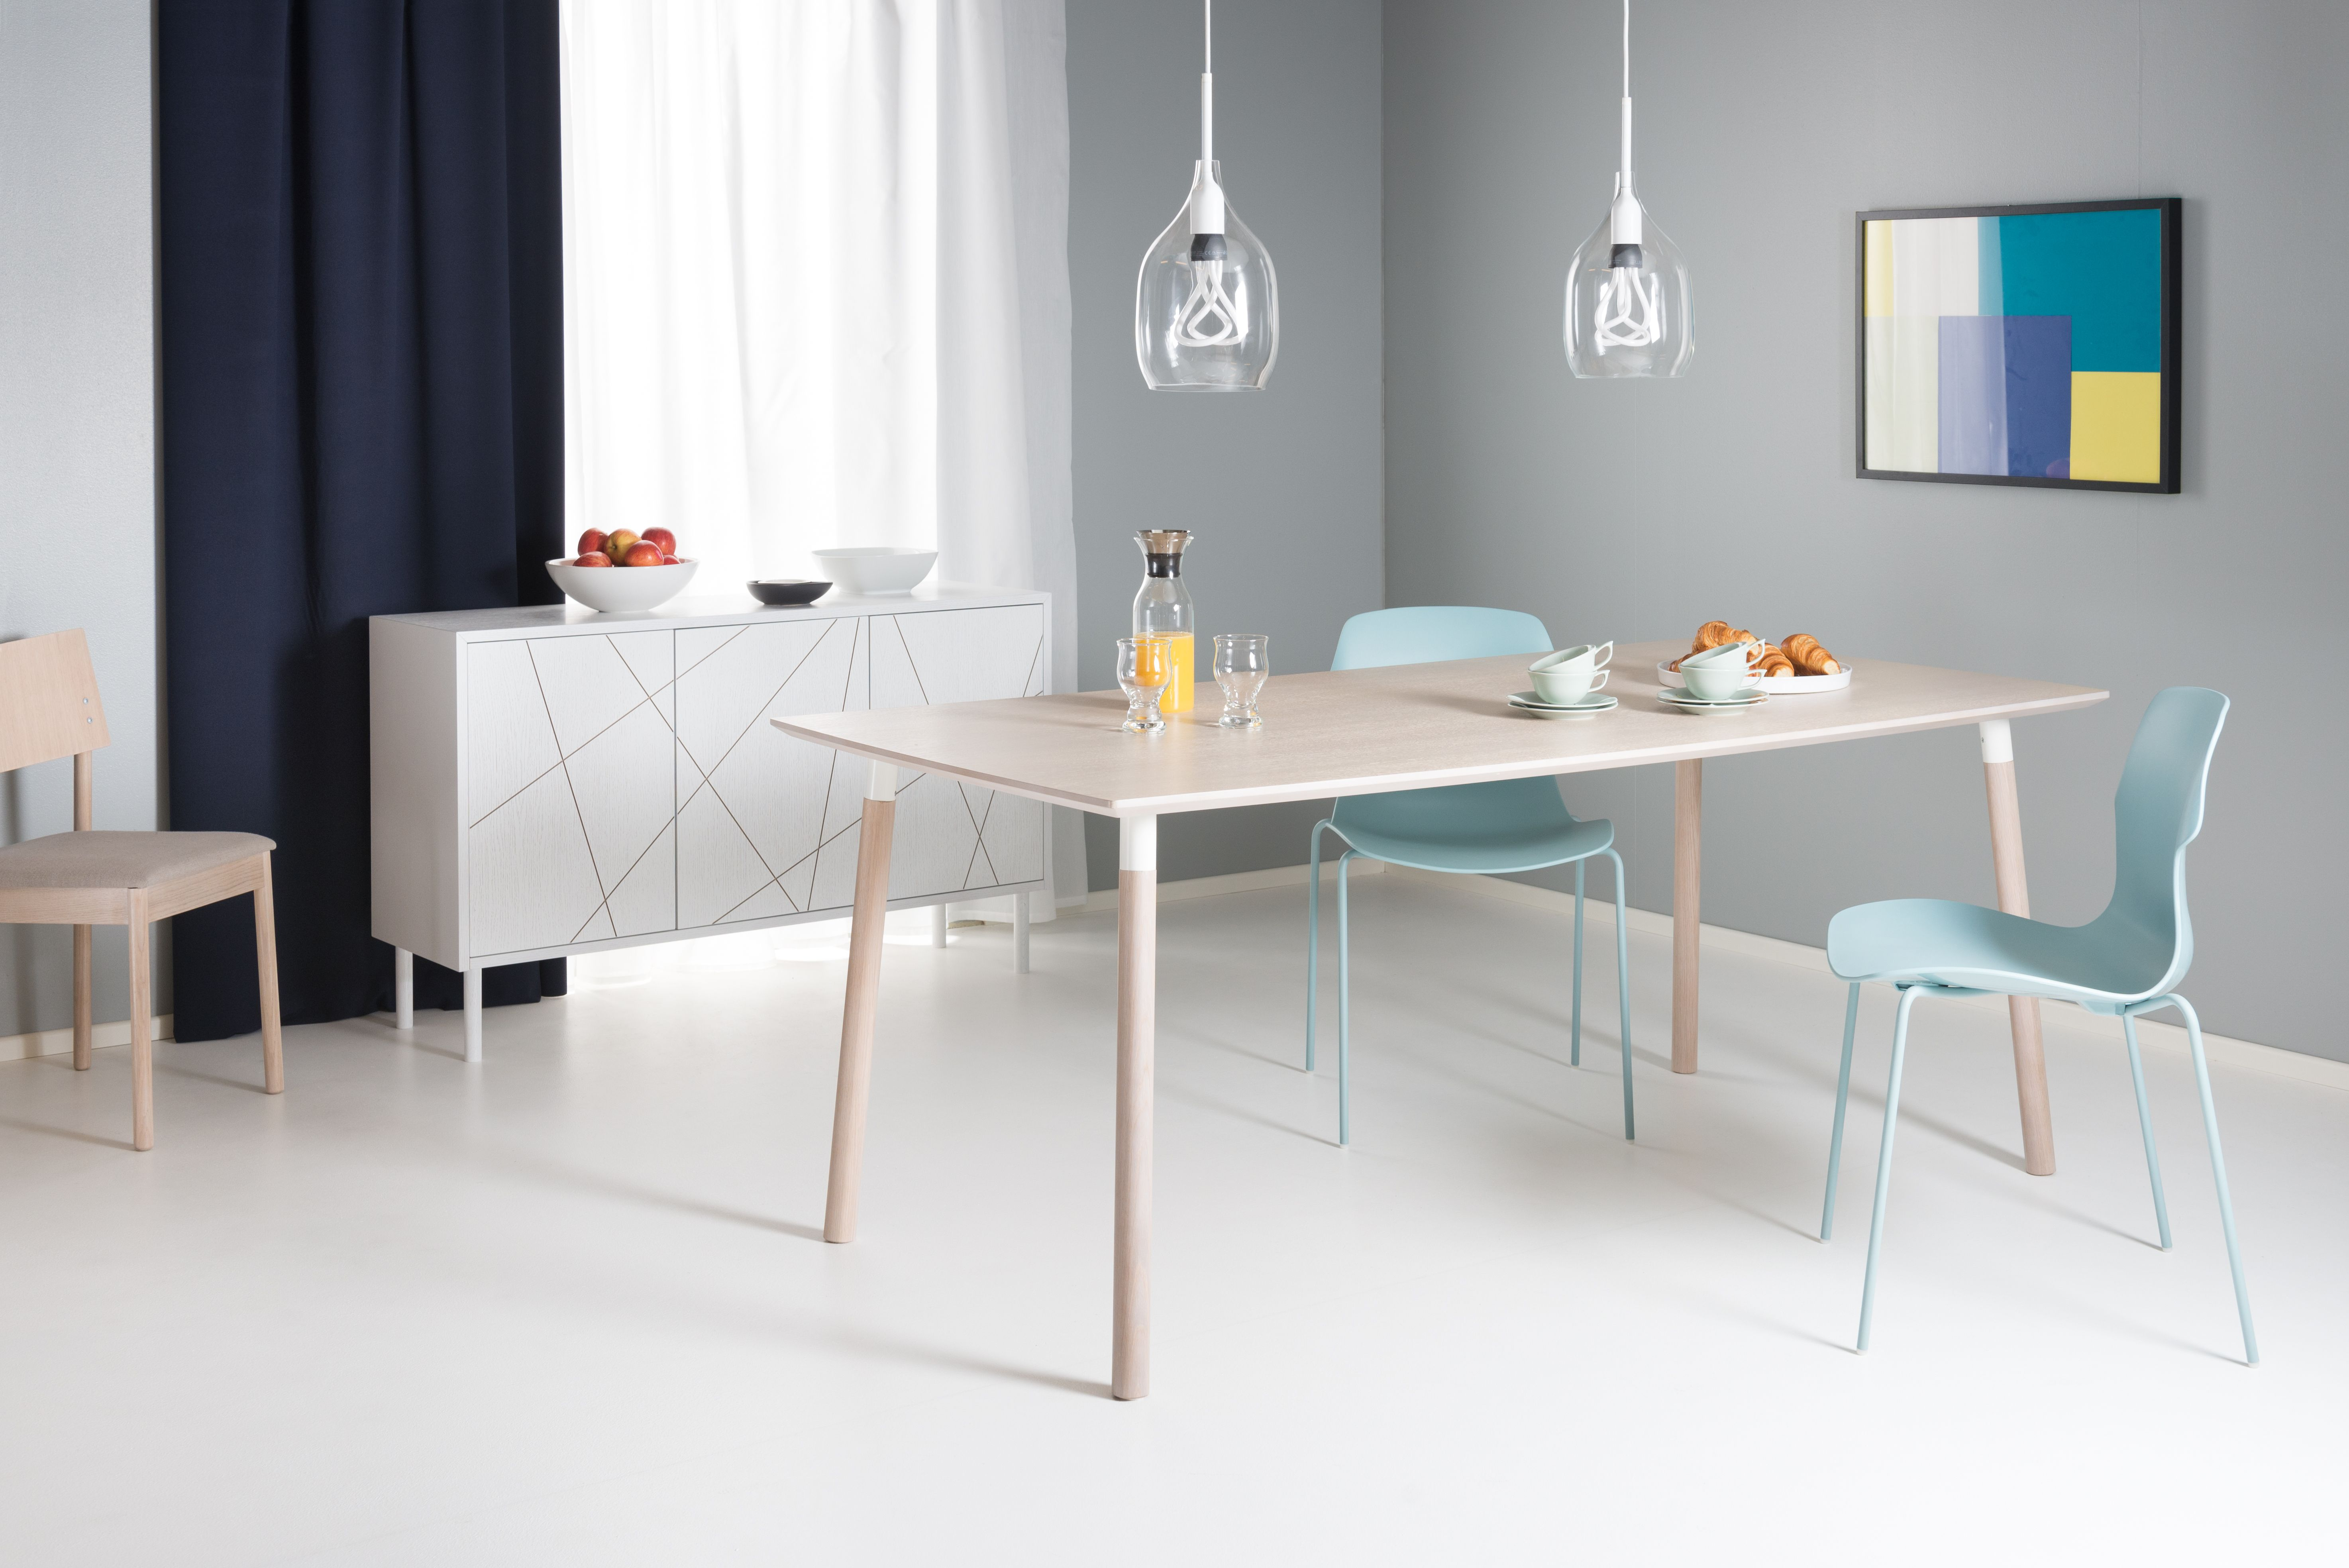 Lehti dining table and Viiva sideboard designed by Isko Lappalainen Table ac panied by Stereo chairs